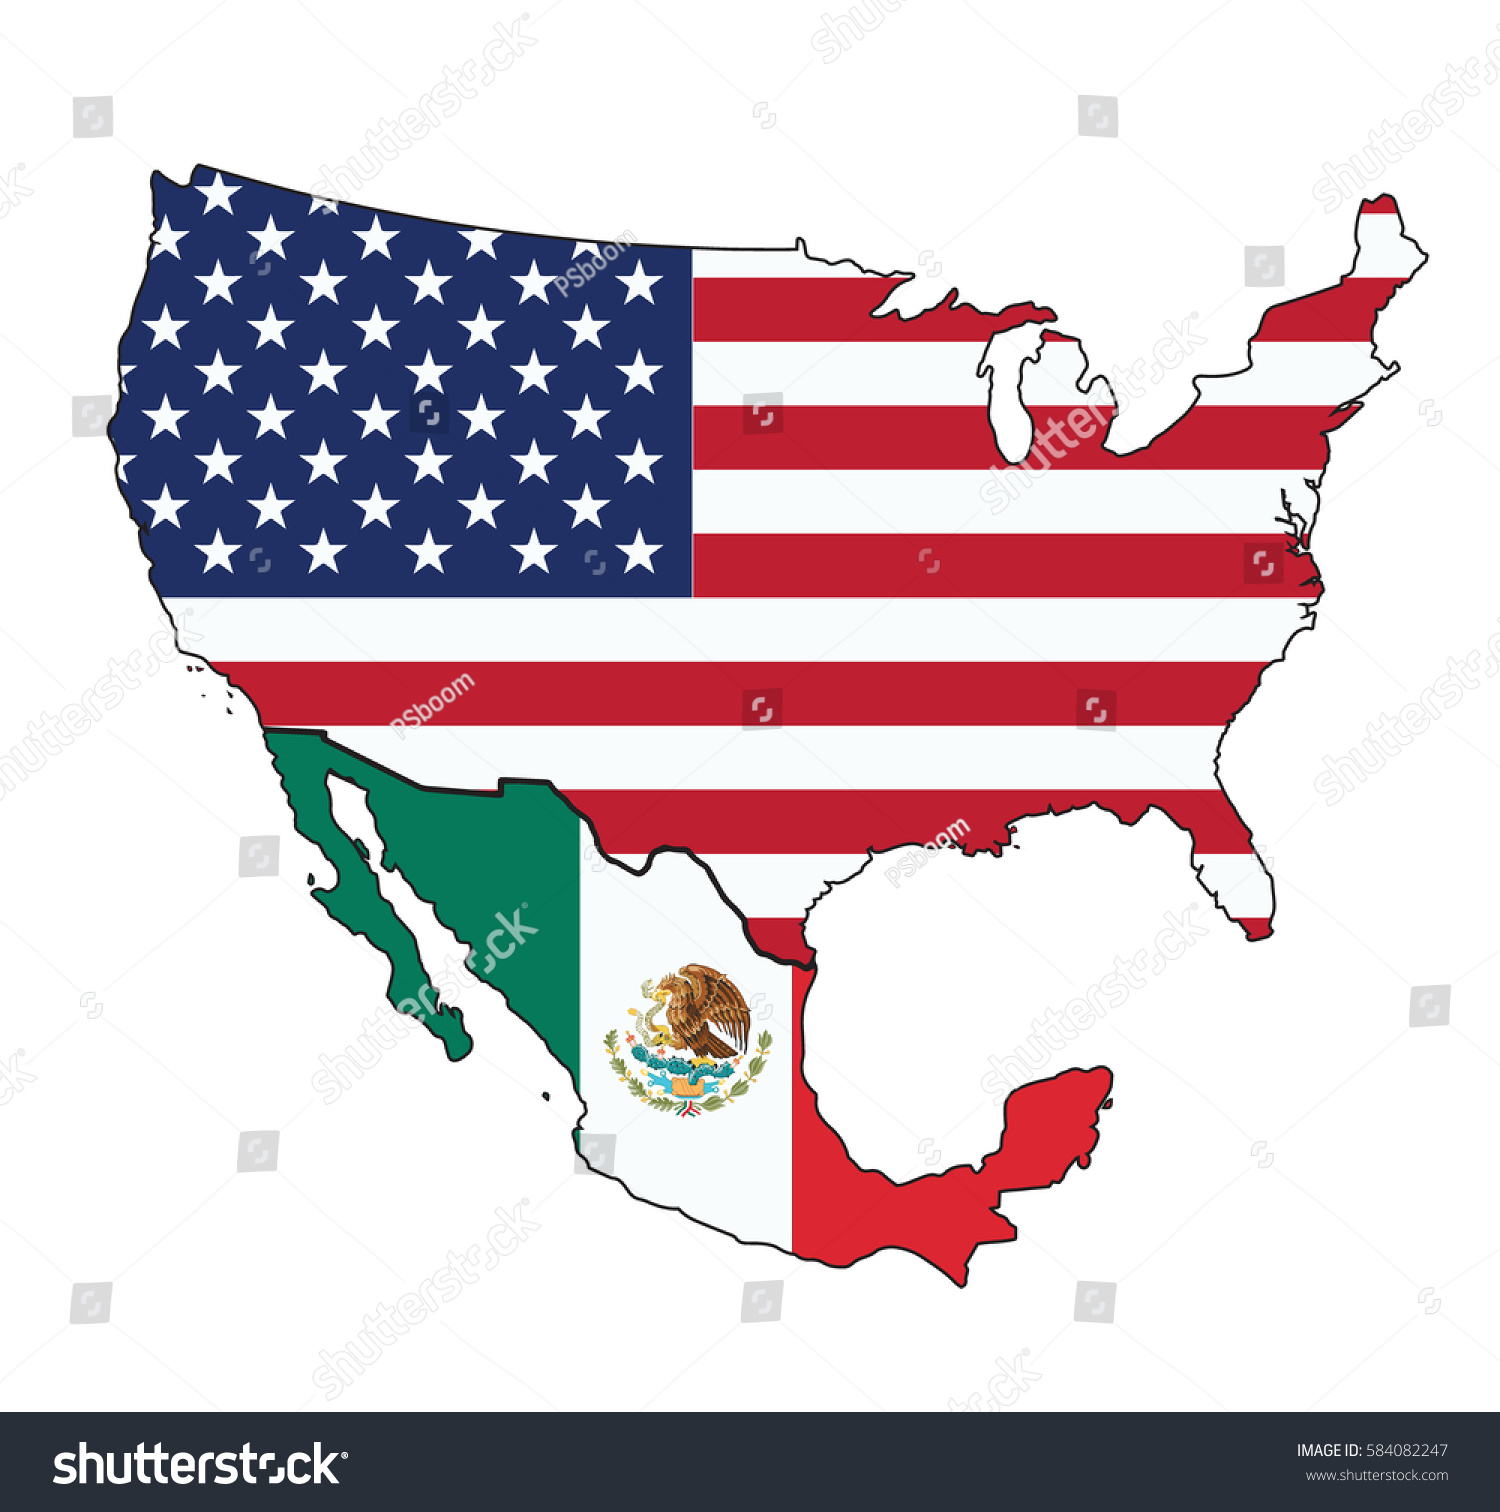 Map Usa Mexico Flag On White Stock Vector Shutterstock - Mexico usa map